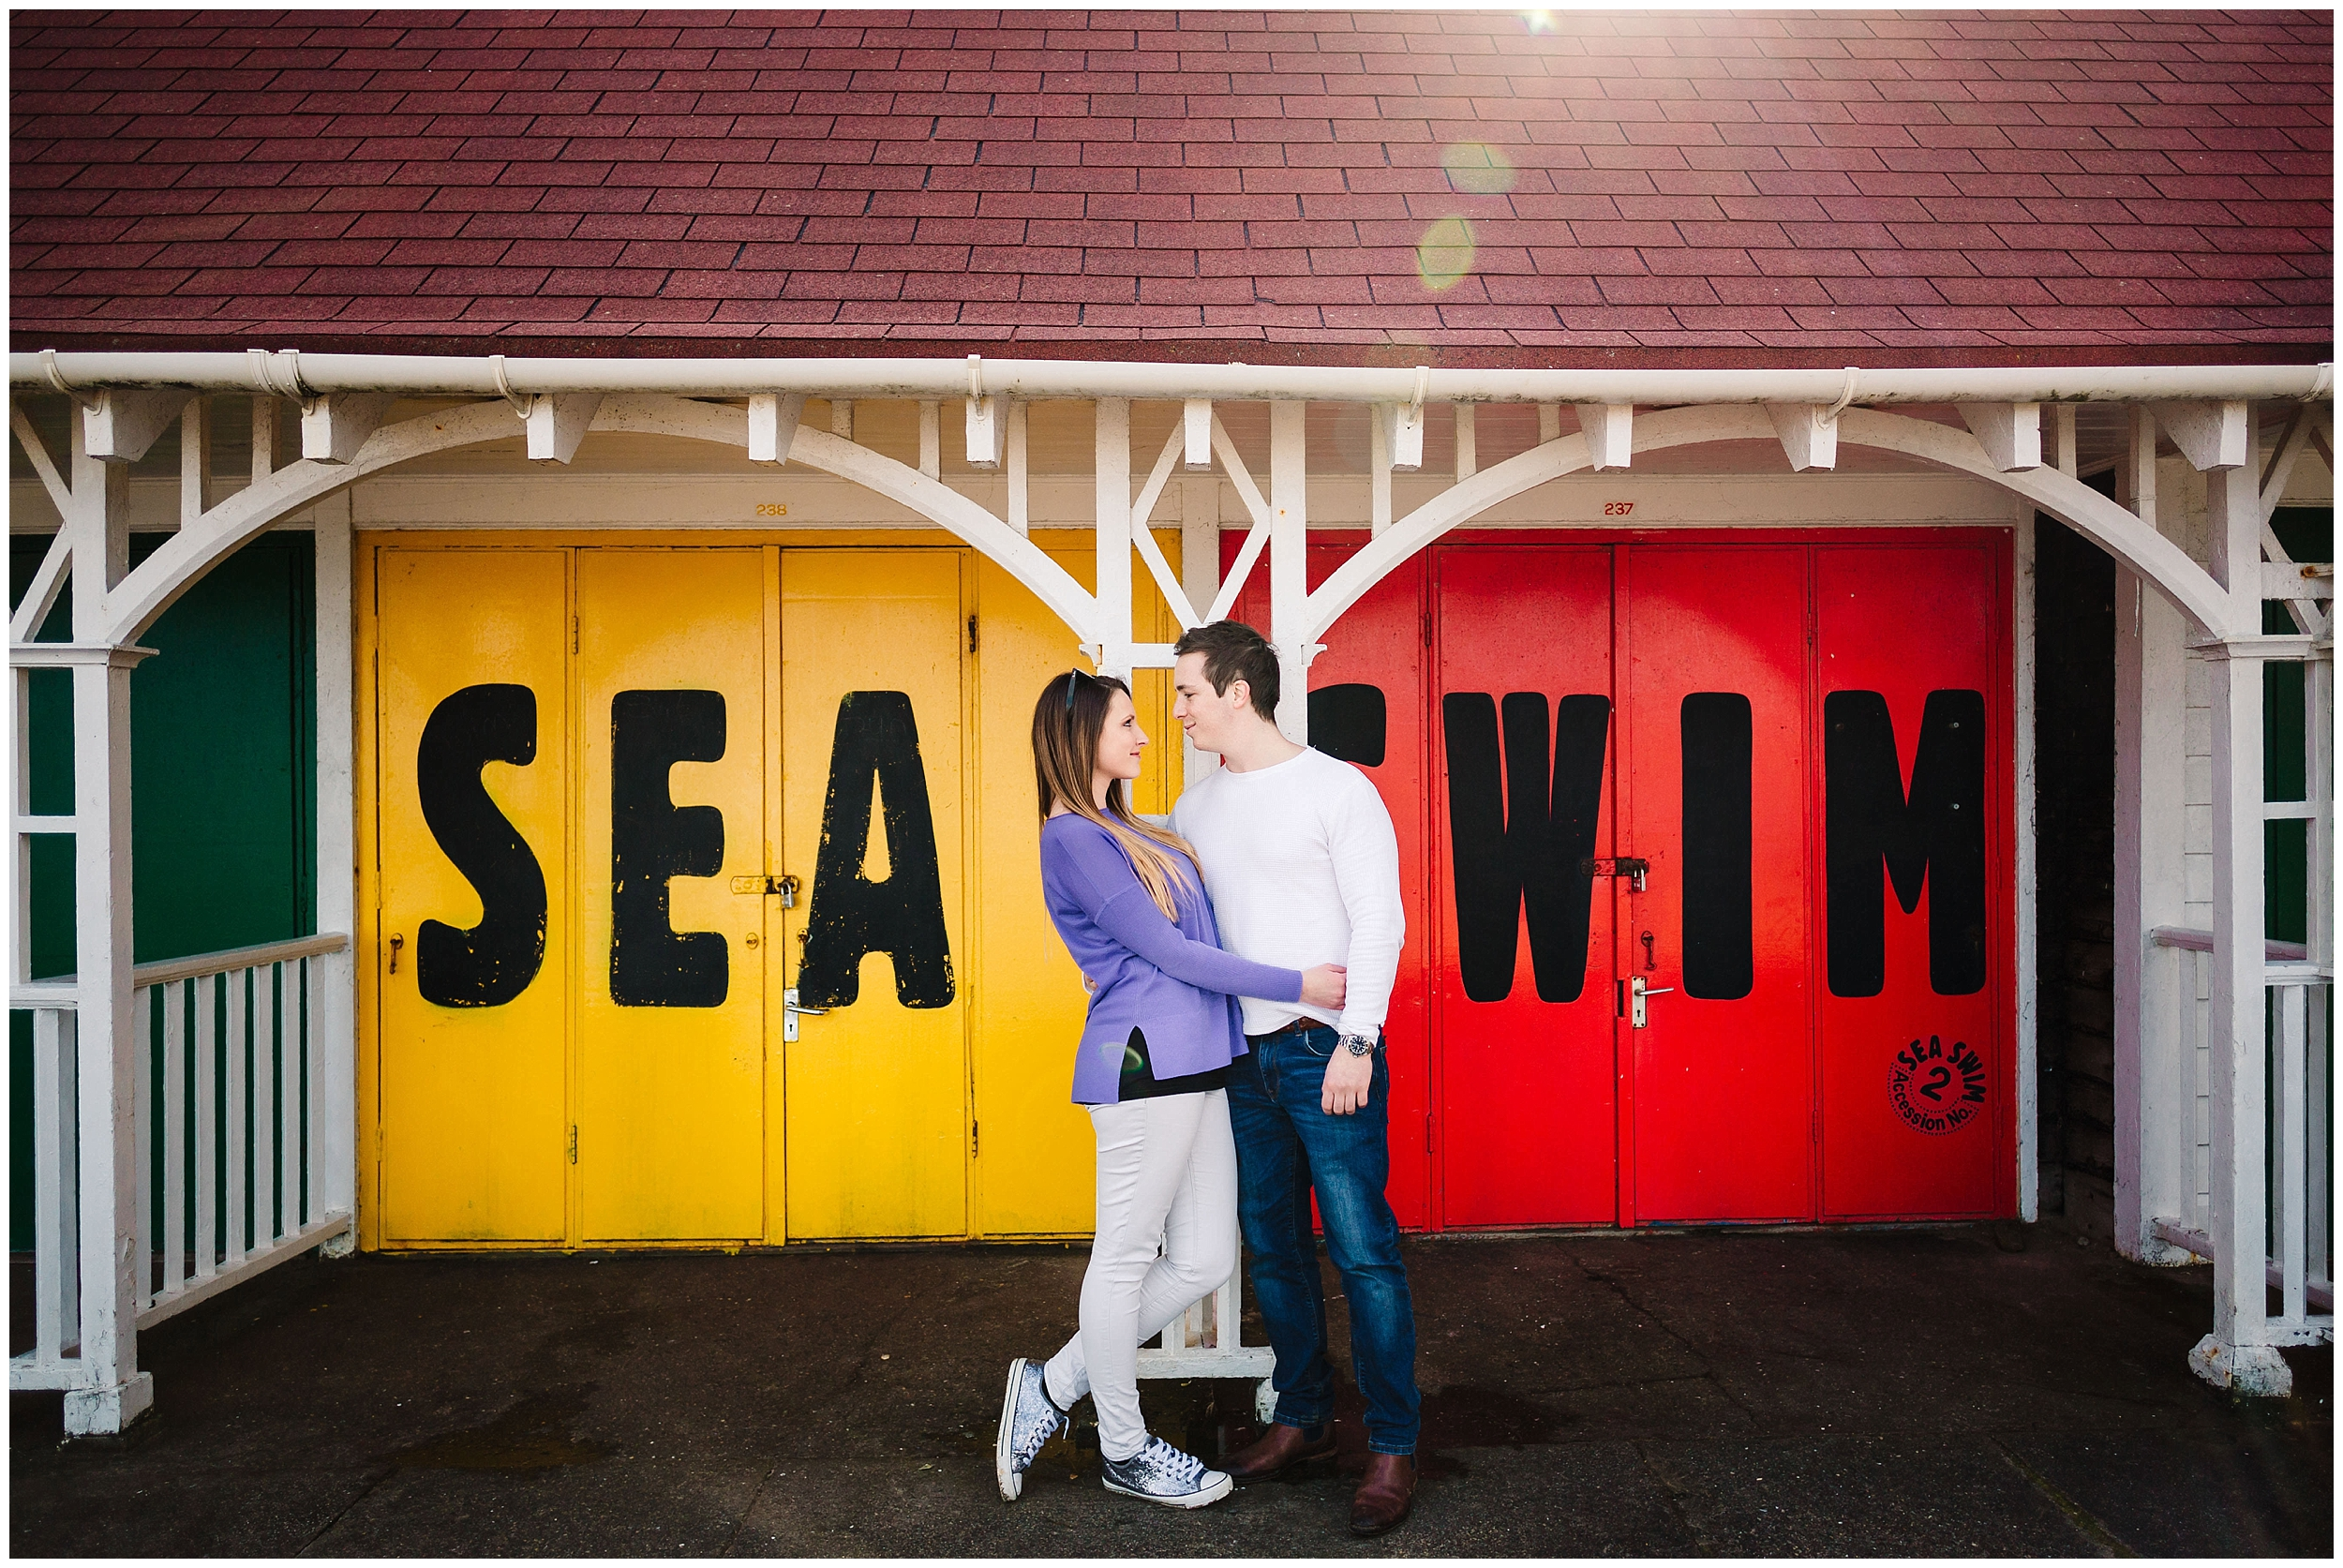 A couple standing in front of red and yellow beach huts in Scarborough, Yorkshire